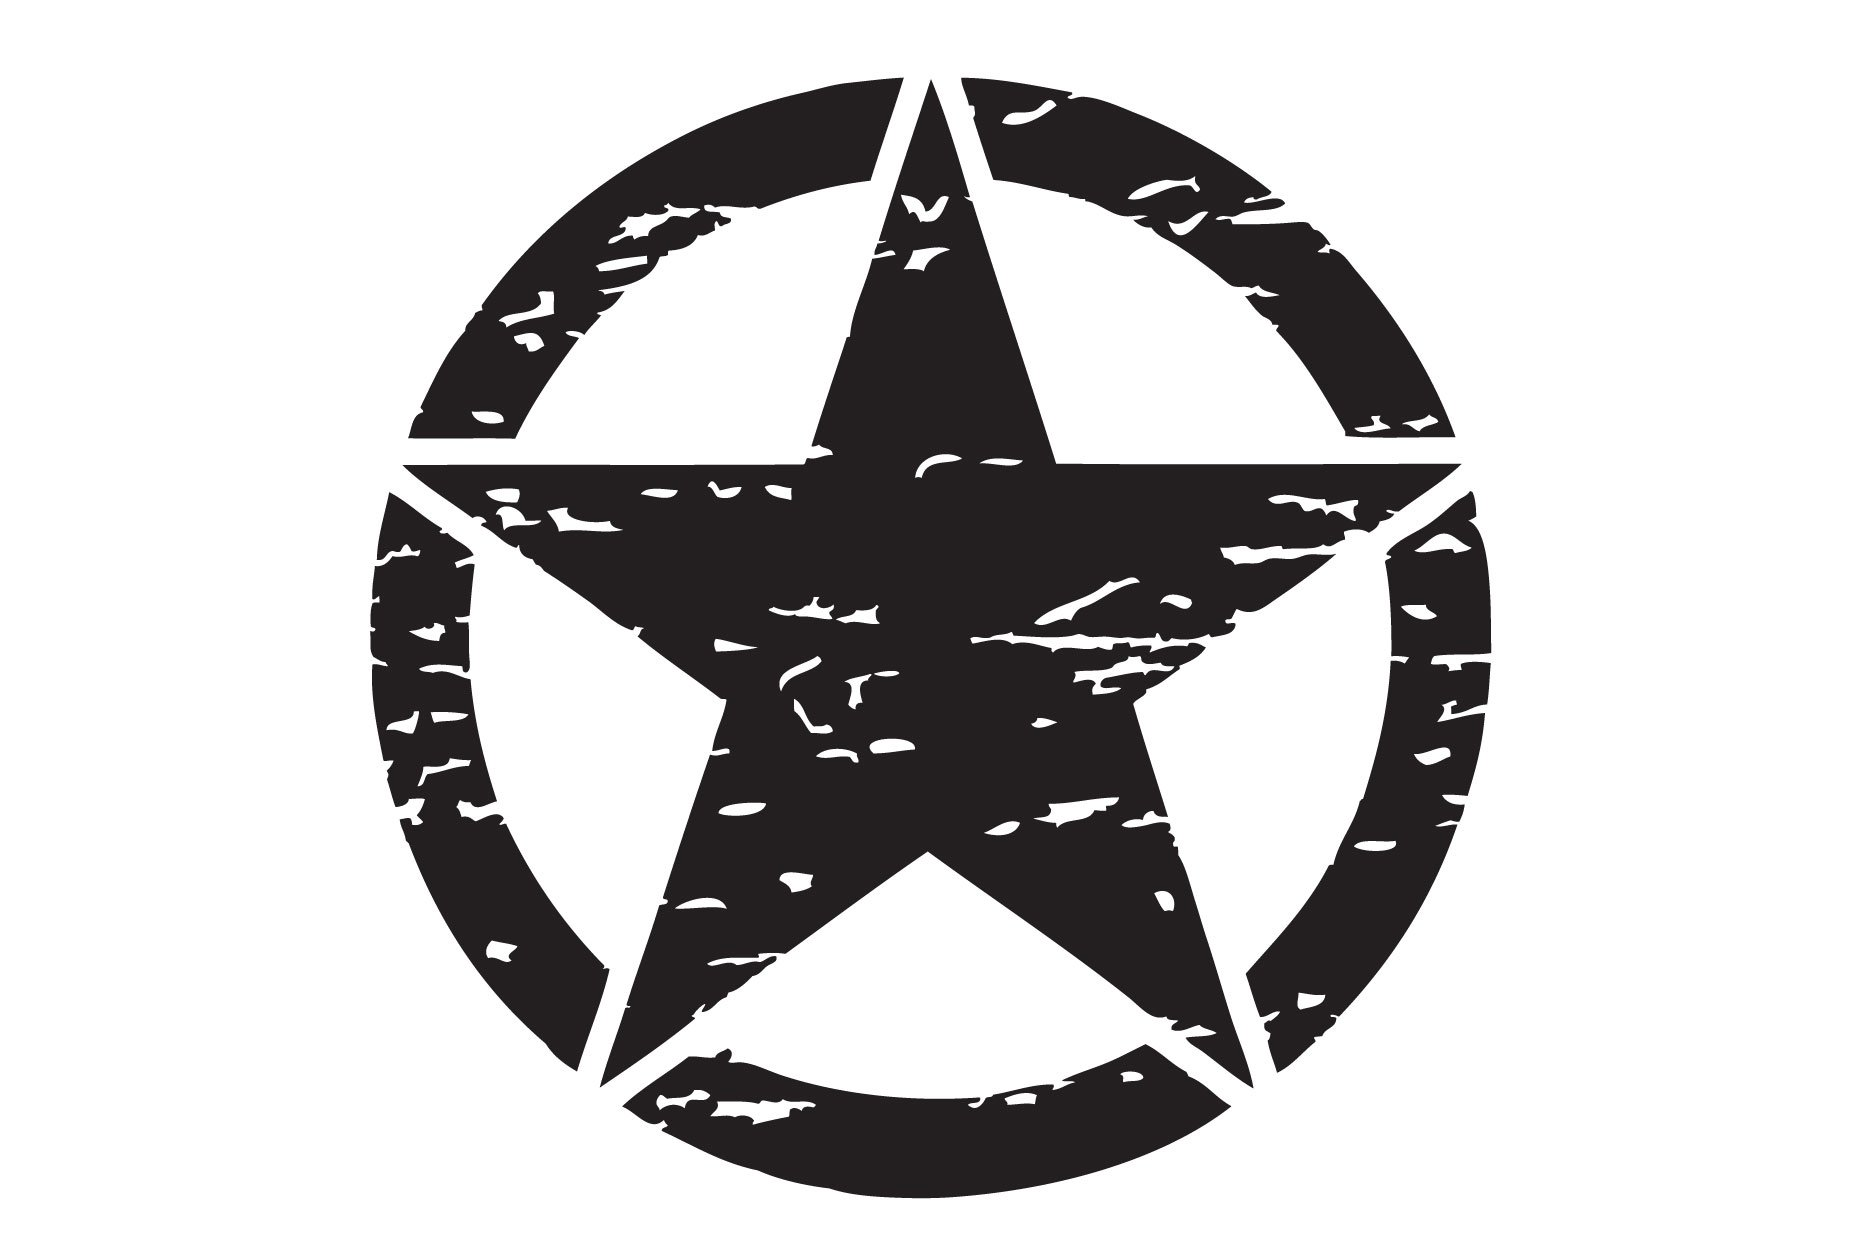 The Pixel Hut gs00155 20'' Matt Black Distressed Army Military Star Hood Decal